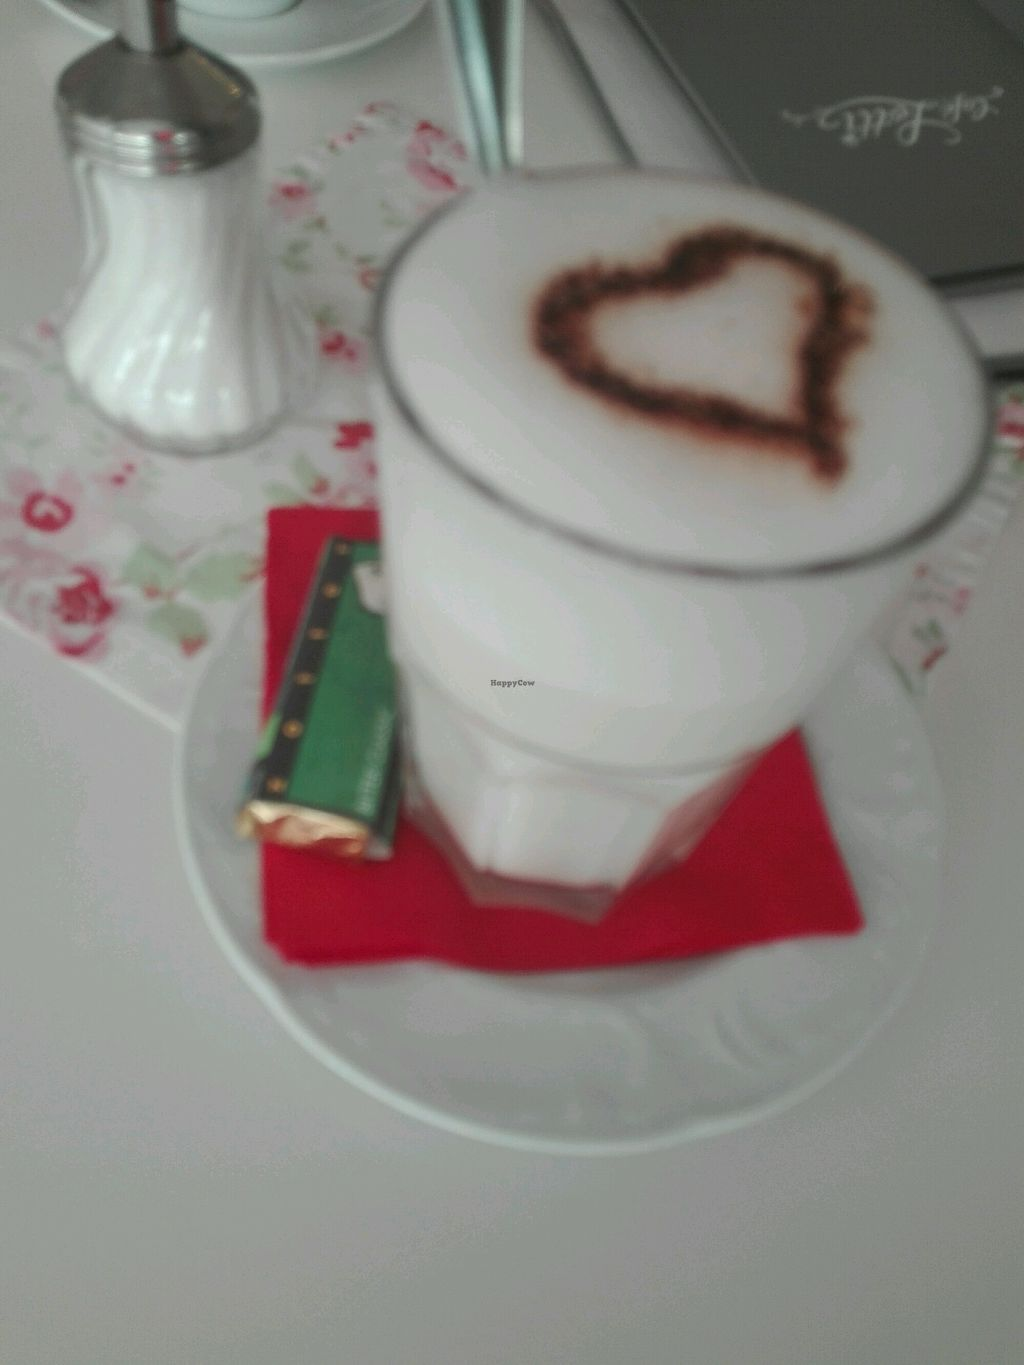 """Photo of Cafe Lotti  by <a href=""""/members/profile/Stormageddon"""">Stormageddon</a> <br/>hot chocolate <br/> August 29, 2017  - <a href='/contact/abuse/image/99854/298776'>Report</a>"""